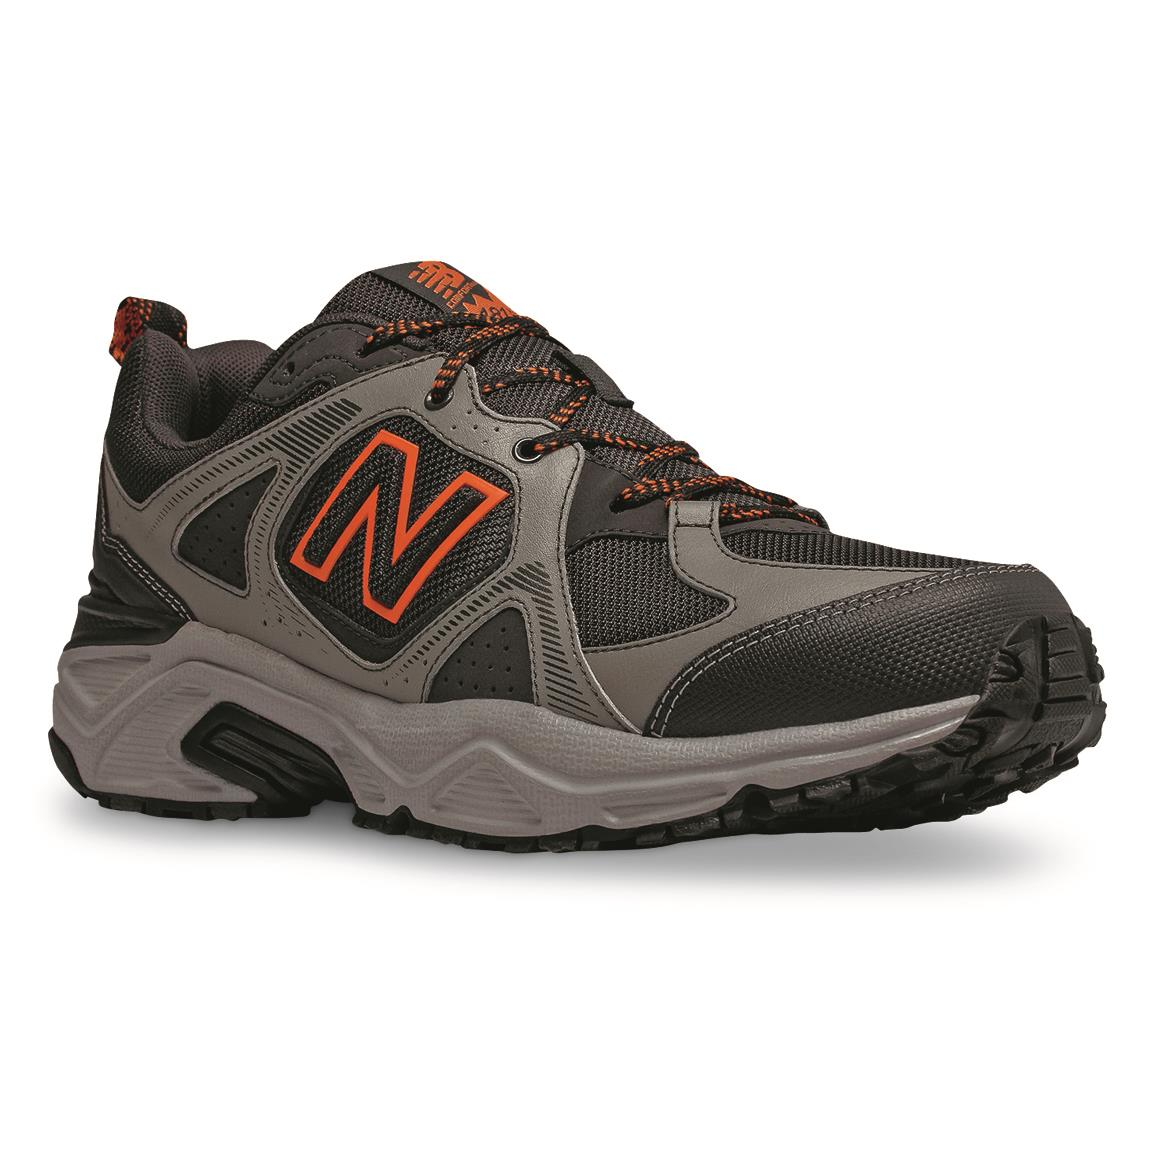 New Balance Men's MT481LC3 Trail Shoes, 10d, Black/Gray/O...